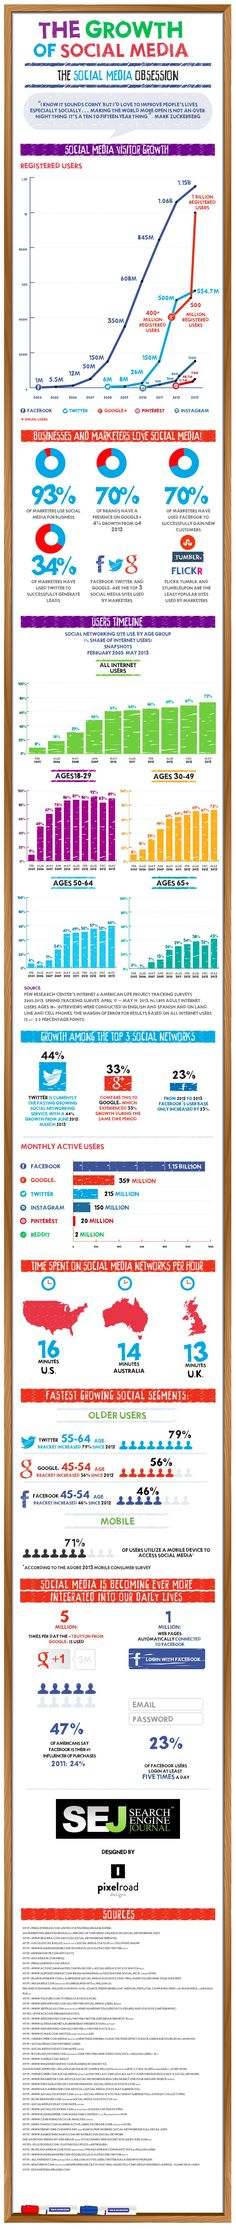 Social Media Facts and statistics